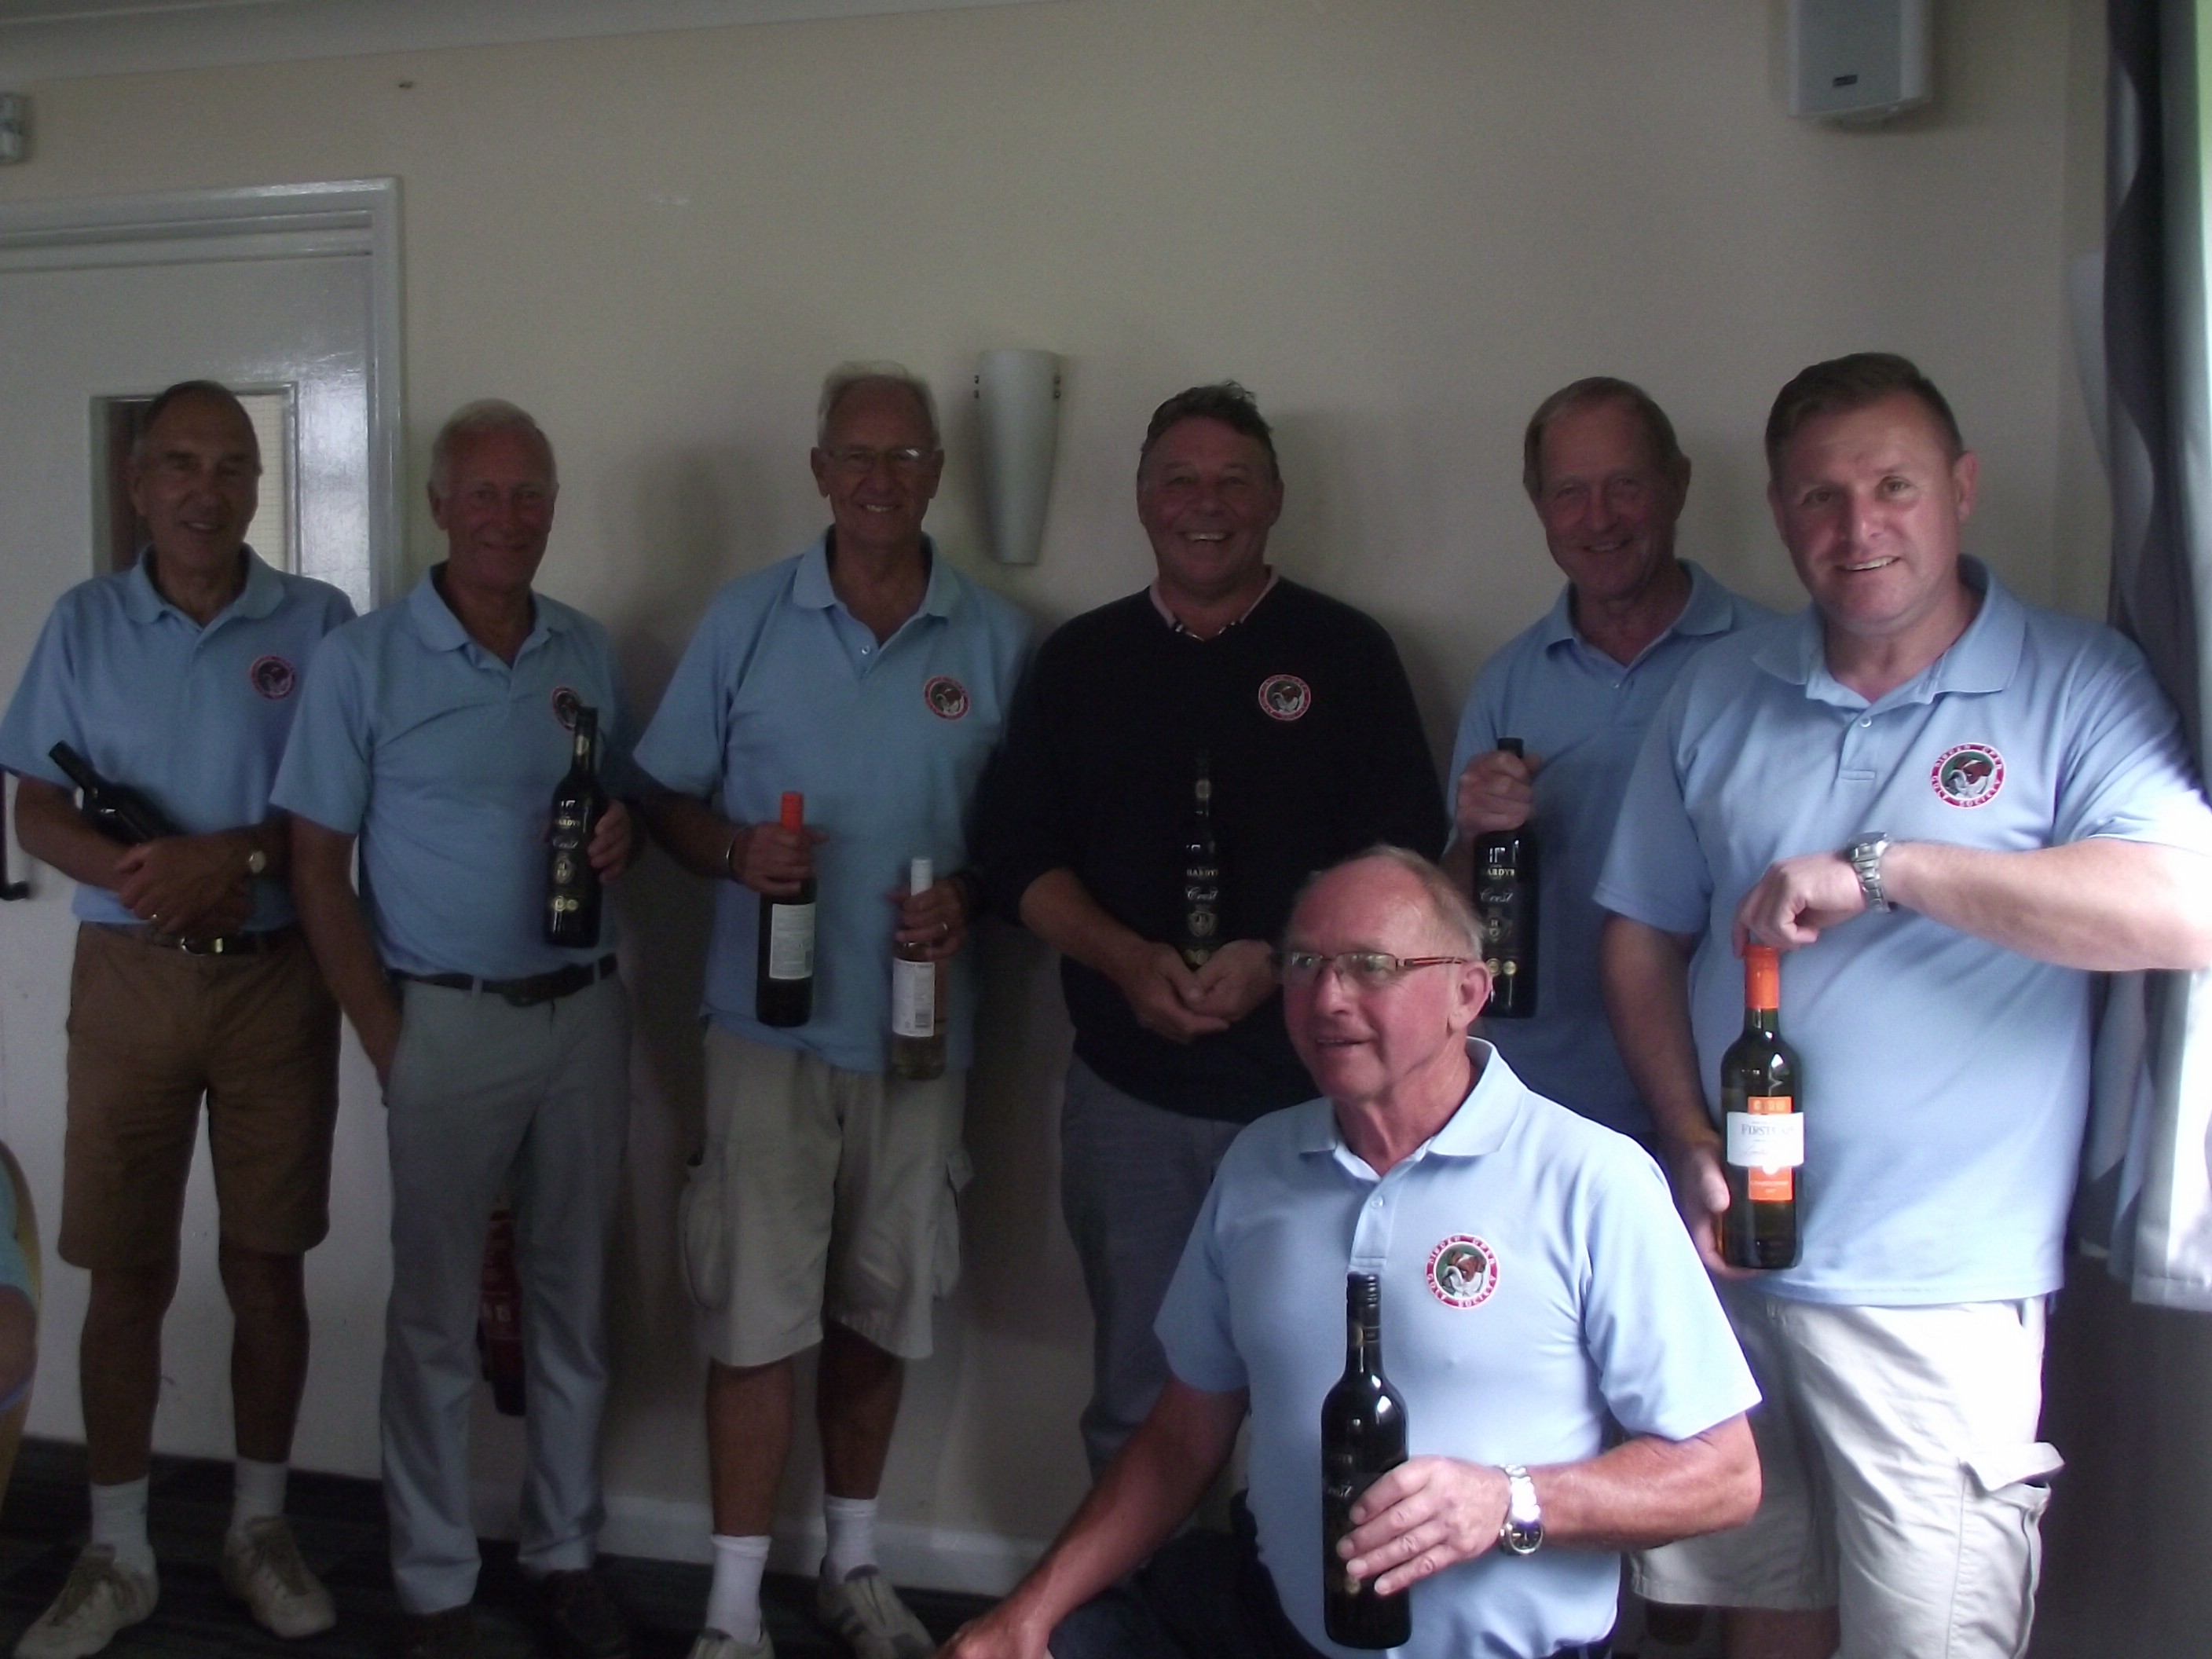 N/Ps l to r John Poore; Rod Emberson; Ron Gooding; Colin Peall; Alan Flaxman; Paul Mortimer